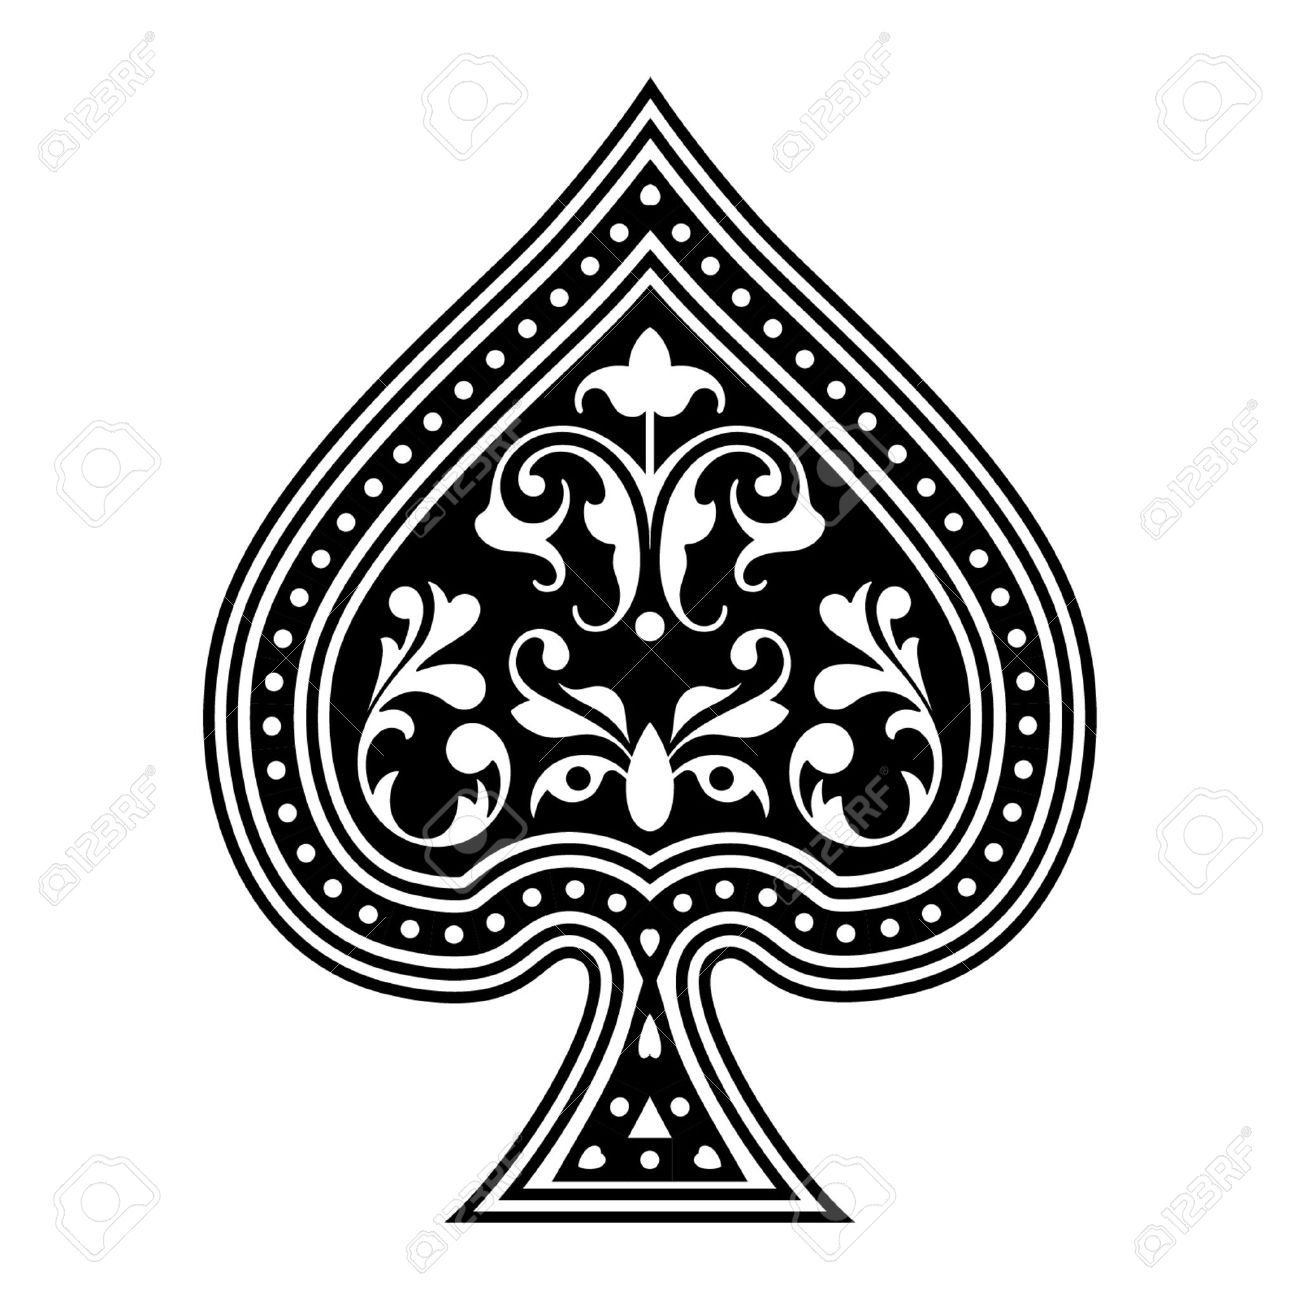 Vintage playing cards ace google search tattoo ideas pinterest vintage playing cards ace google search biocorpaavc Choice Image